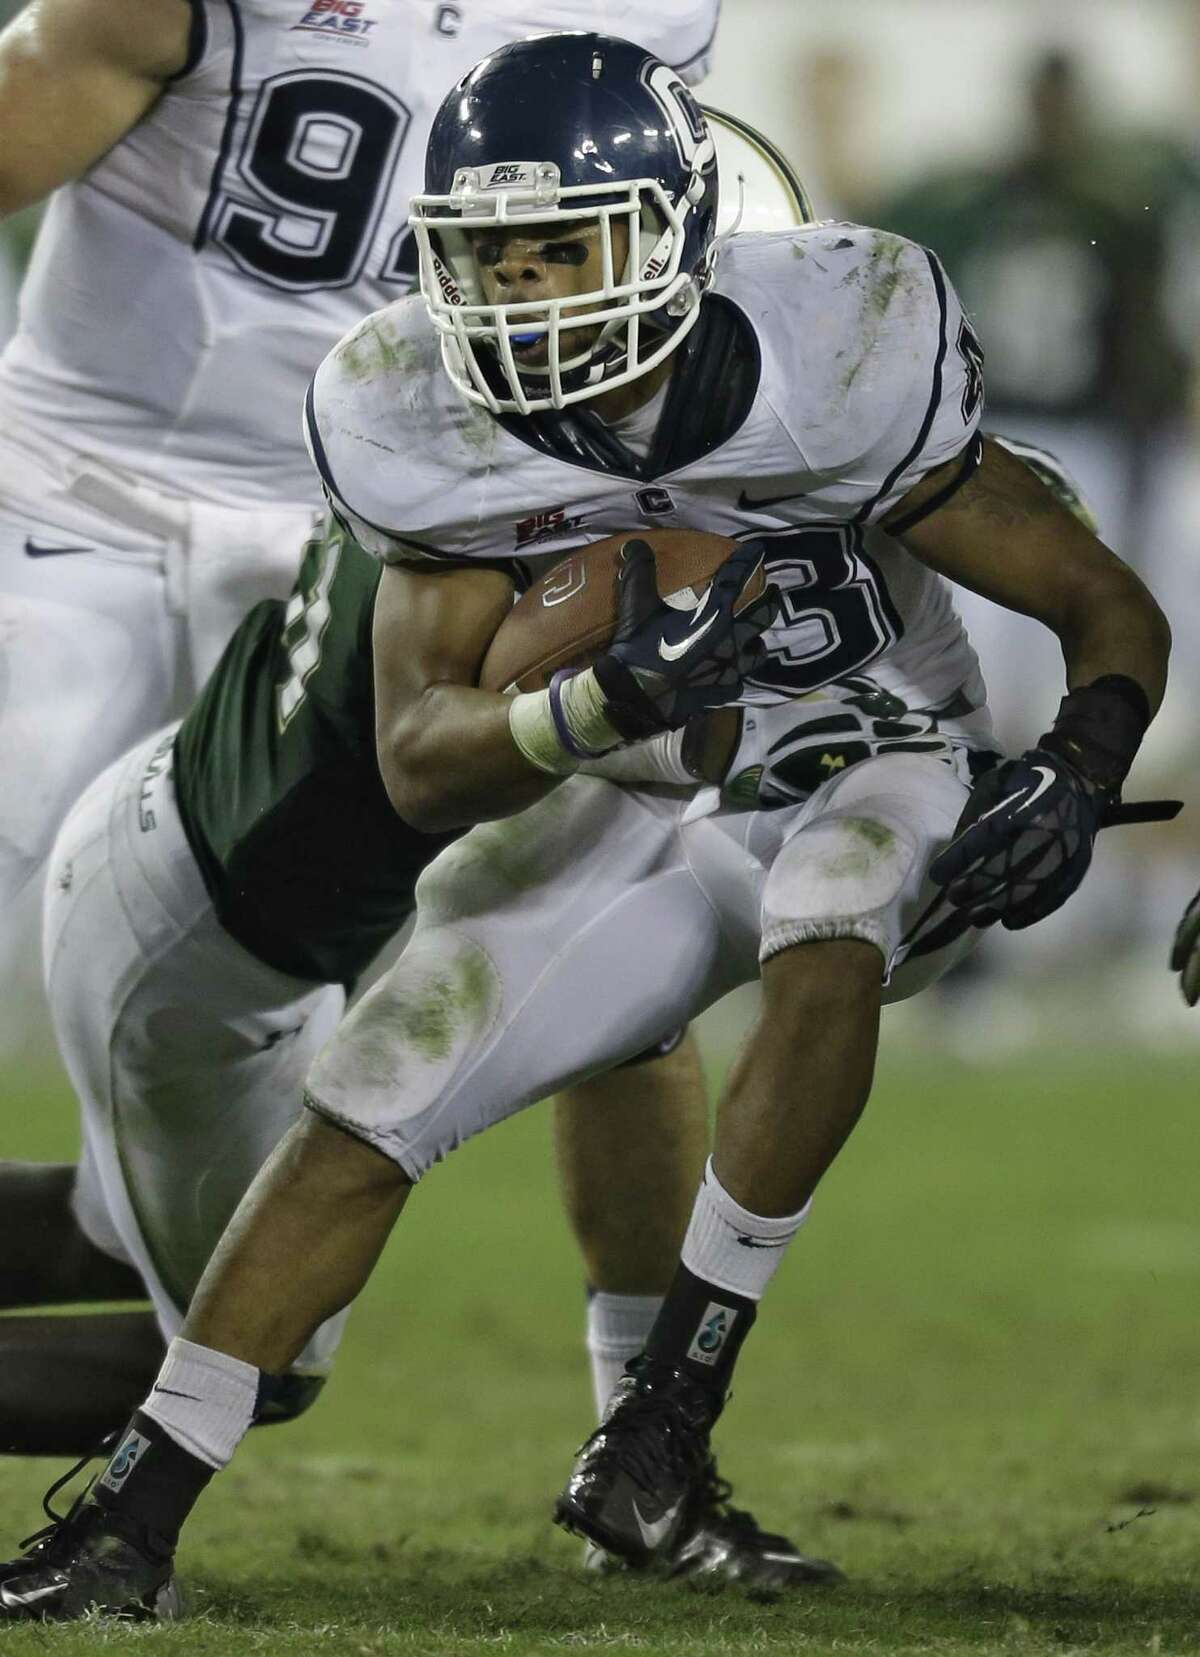 Connecticut running back Lyle McCombs runs with the ball during the fourth quarter of the Huskies game against South Florida Saturday, Nov. 3, 2012. Photo by Associated Press